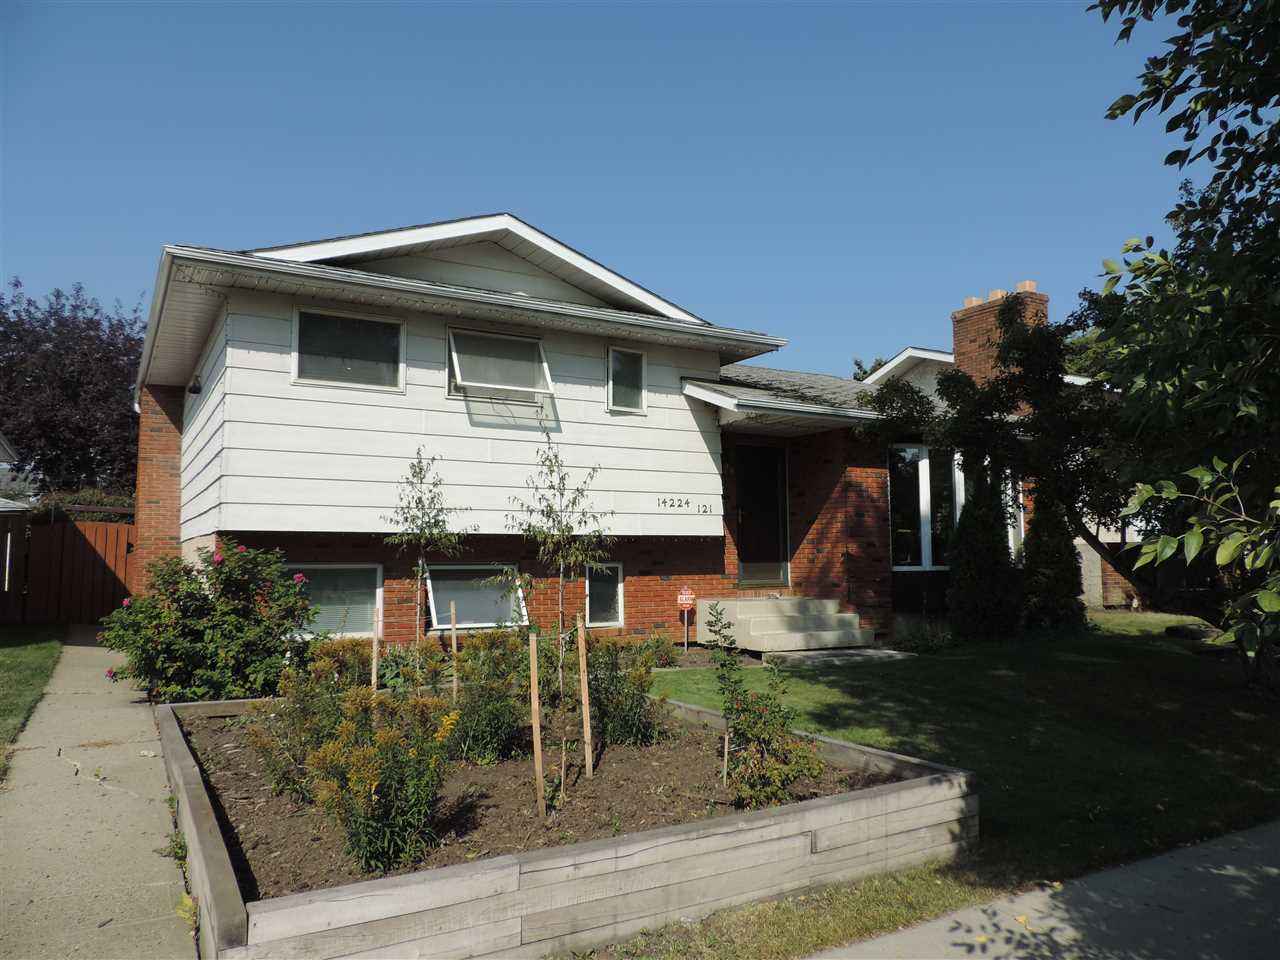 Main Photo: 14224 121 Street in Edmonton: Zone 27 House for sale : MLS® # E4081299